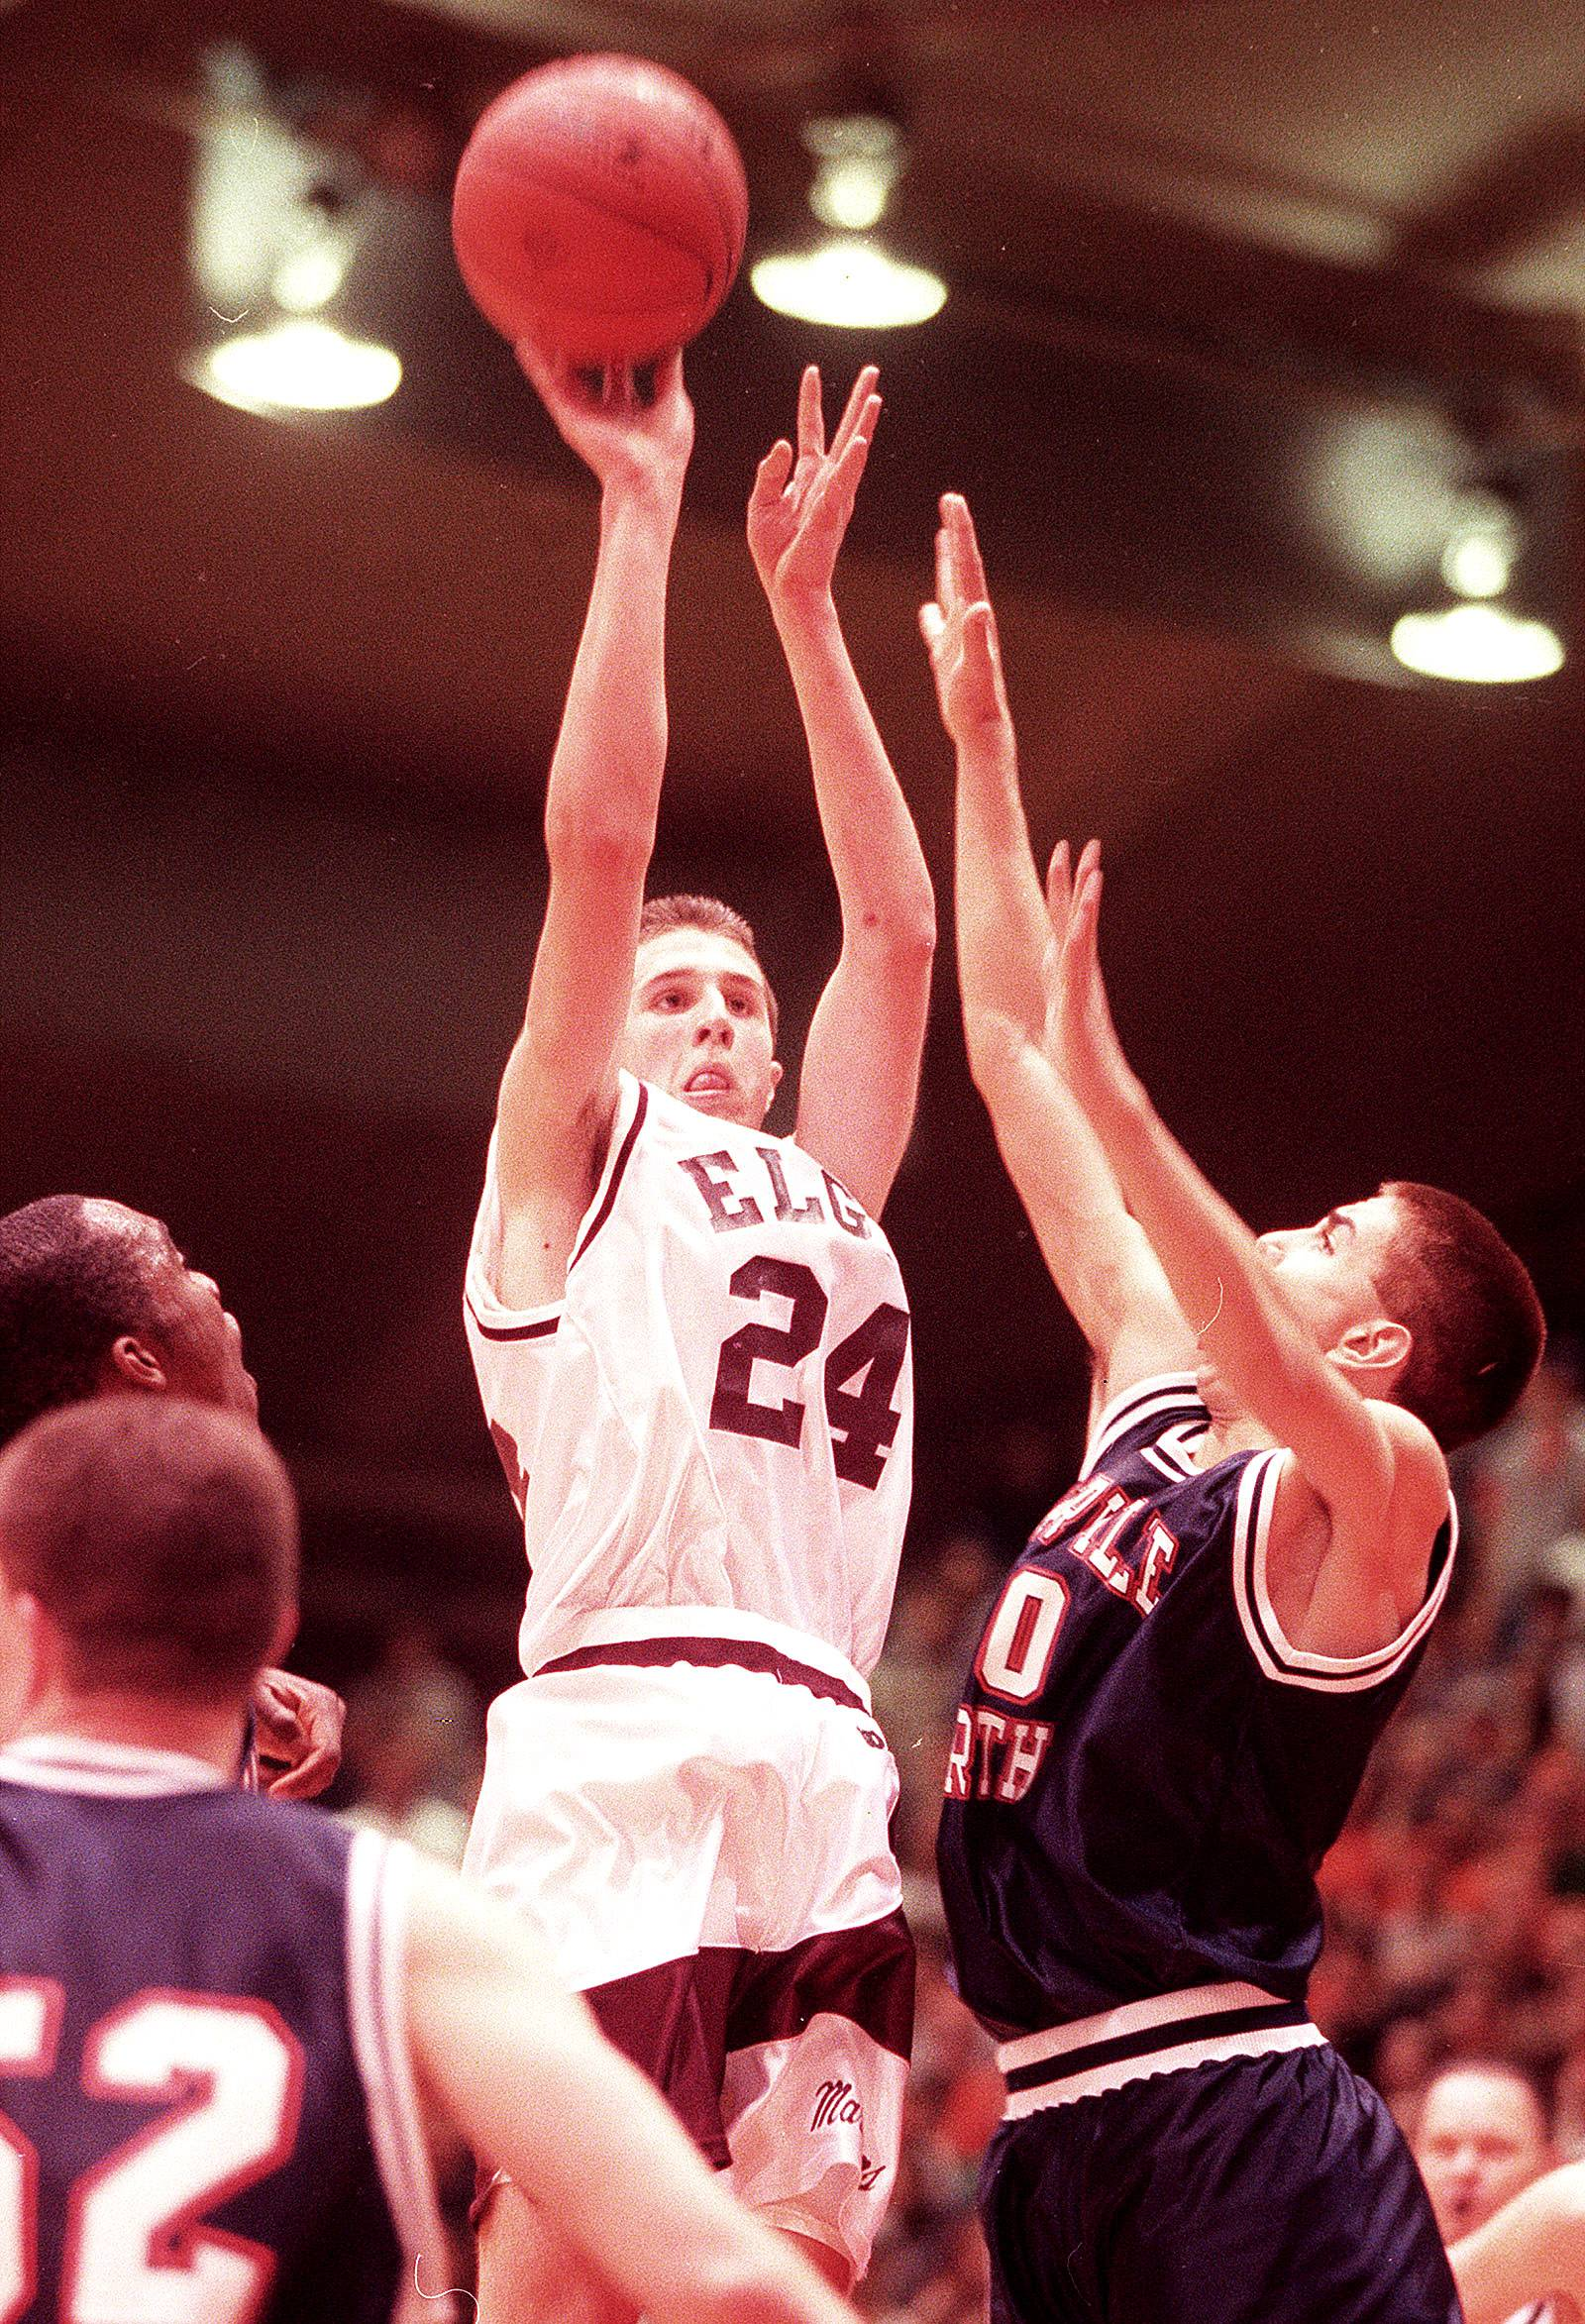 When he played for Elgin High School, Sean Harrington (24) was one of the top scorers in the state.